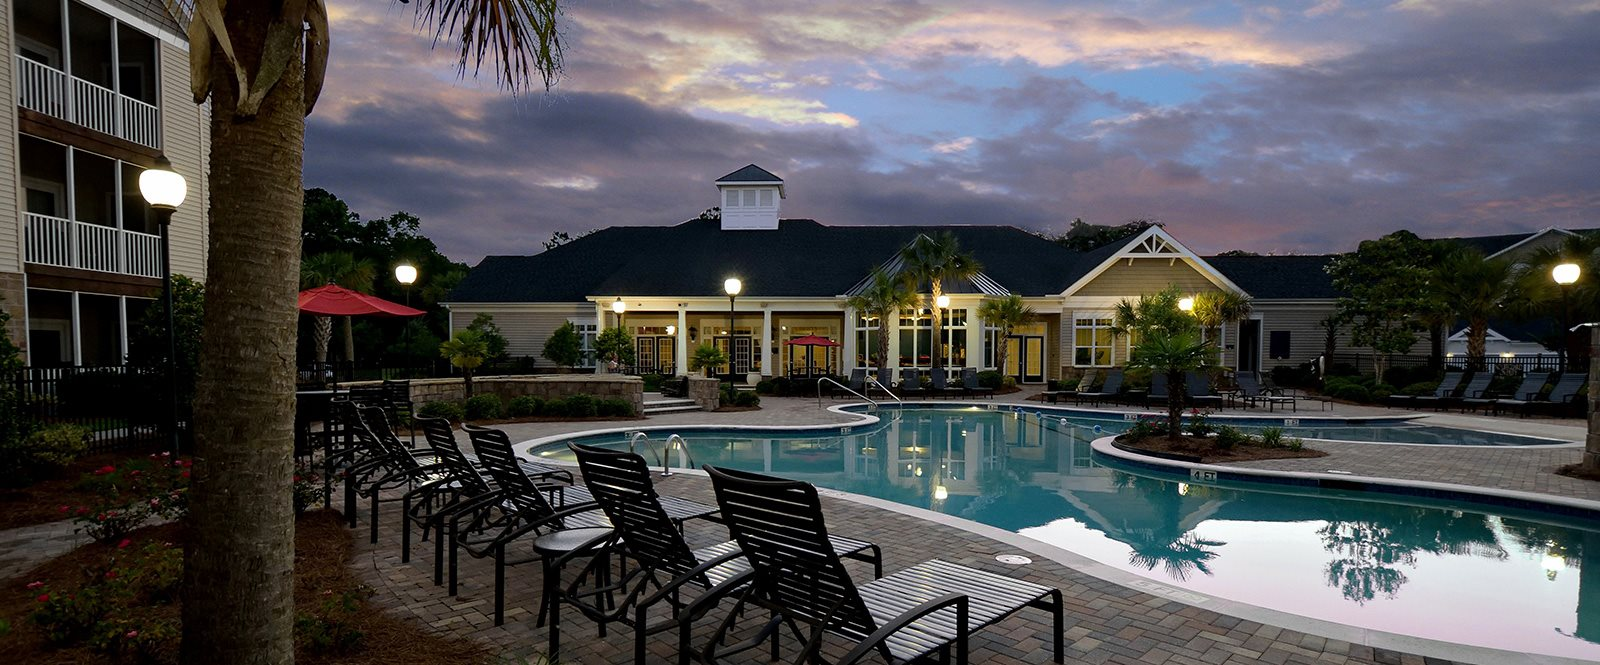 Poolside Large Sundecks at Abberly Pointe Apartment Homes, Beaufort, SC, 29935